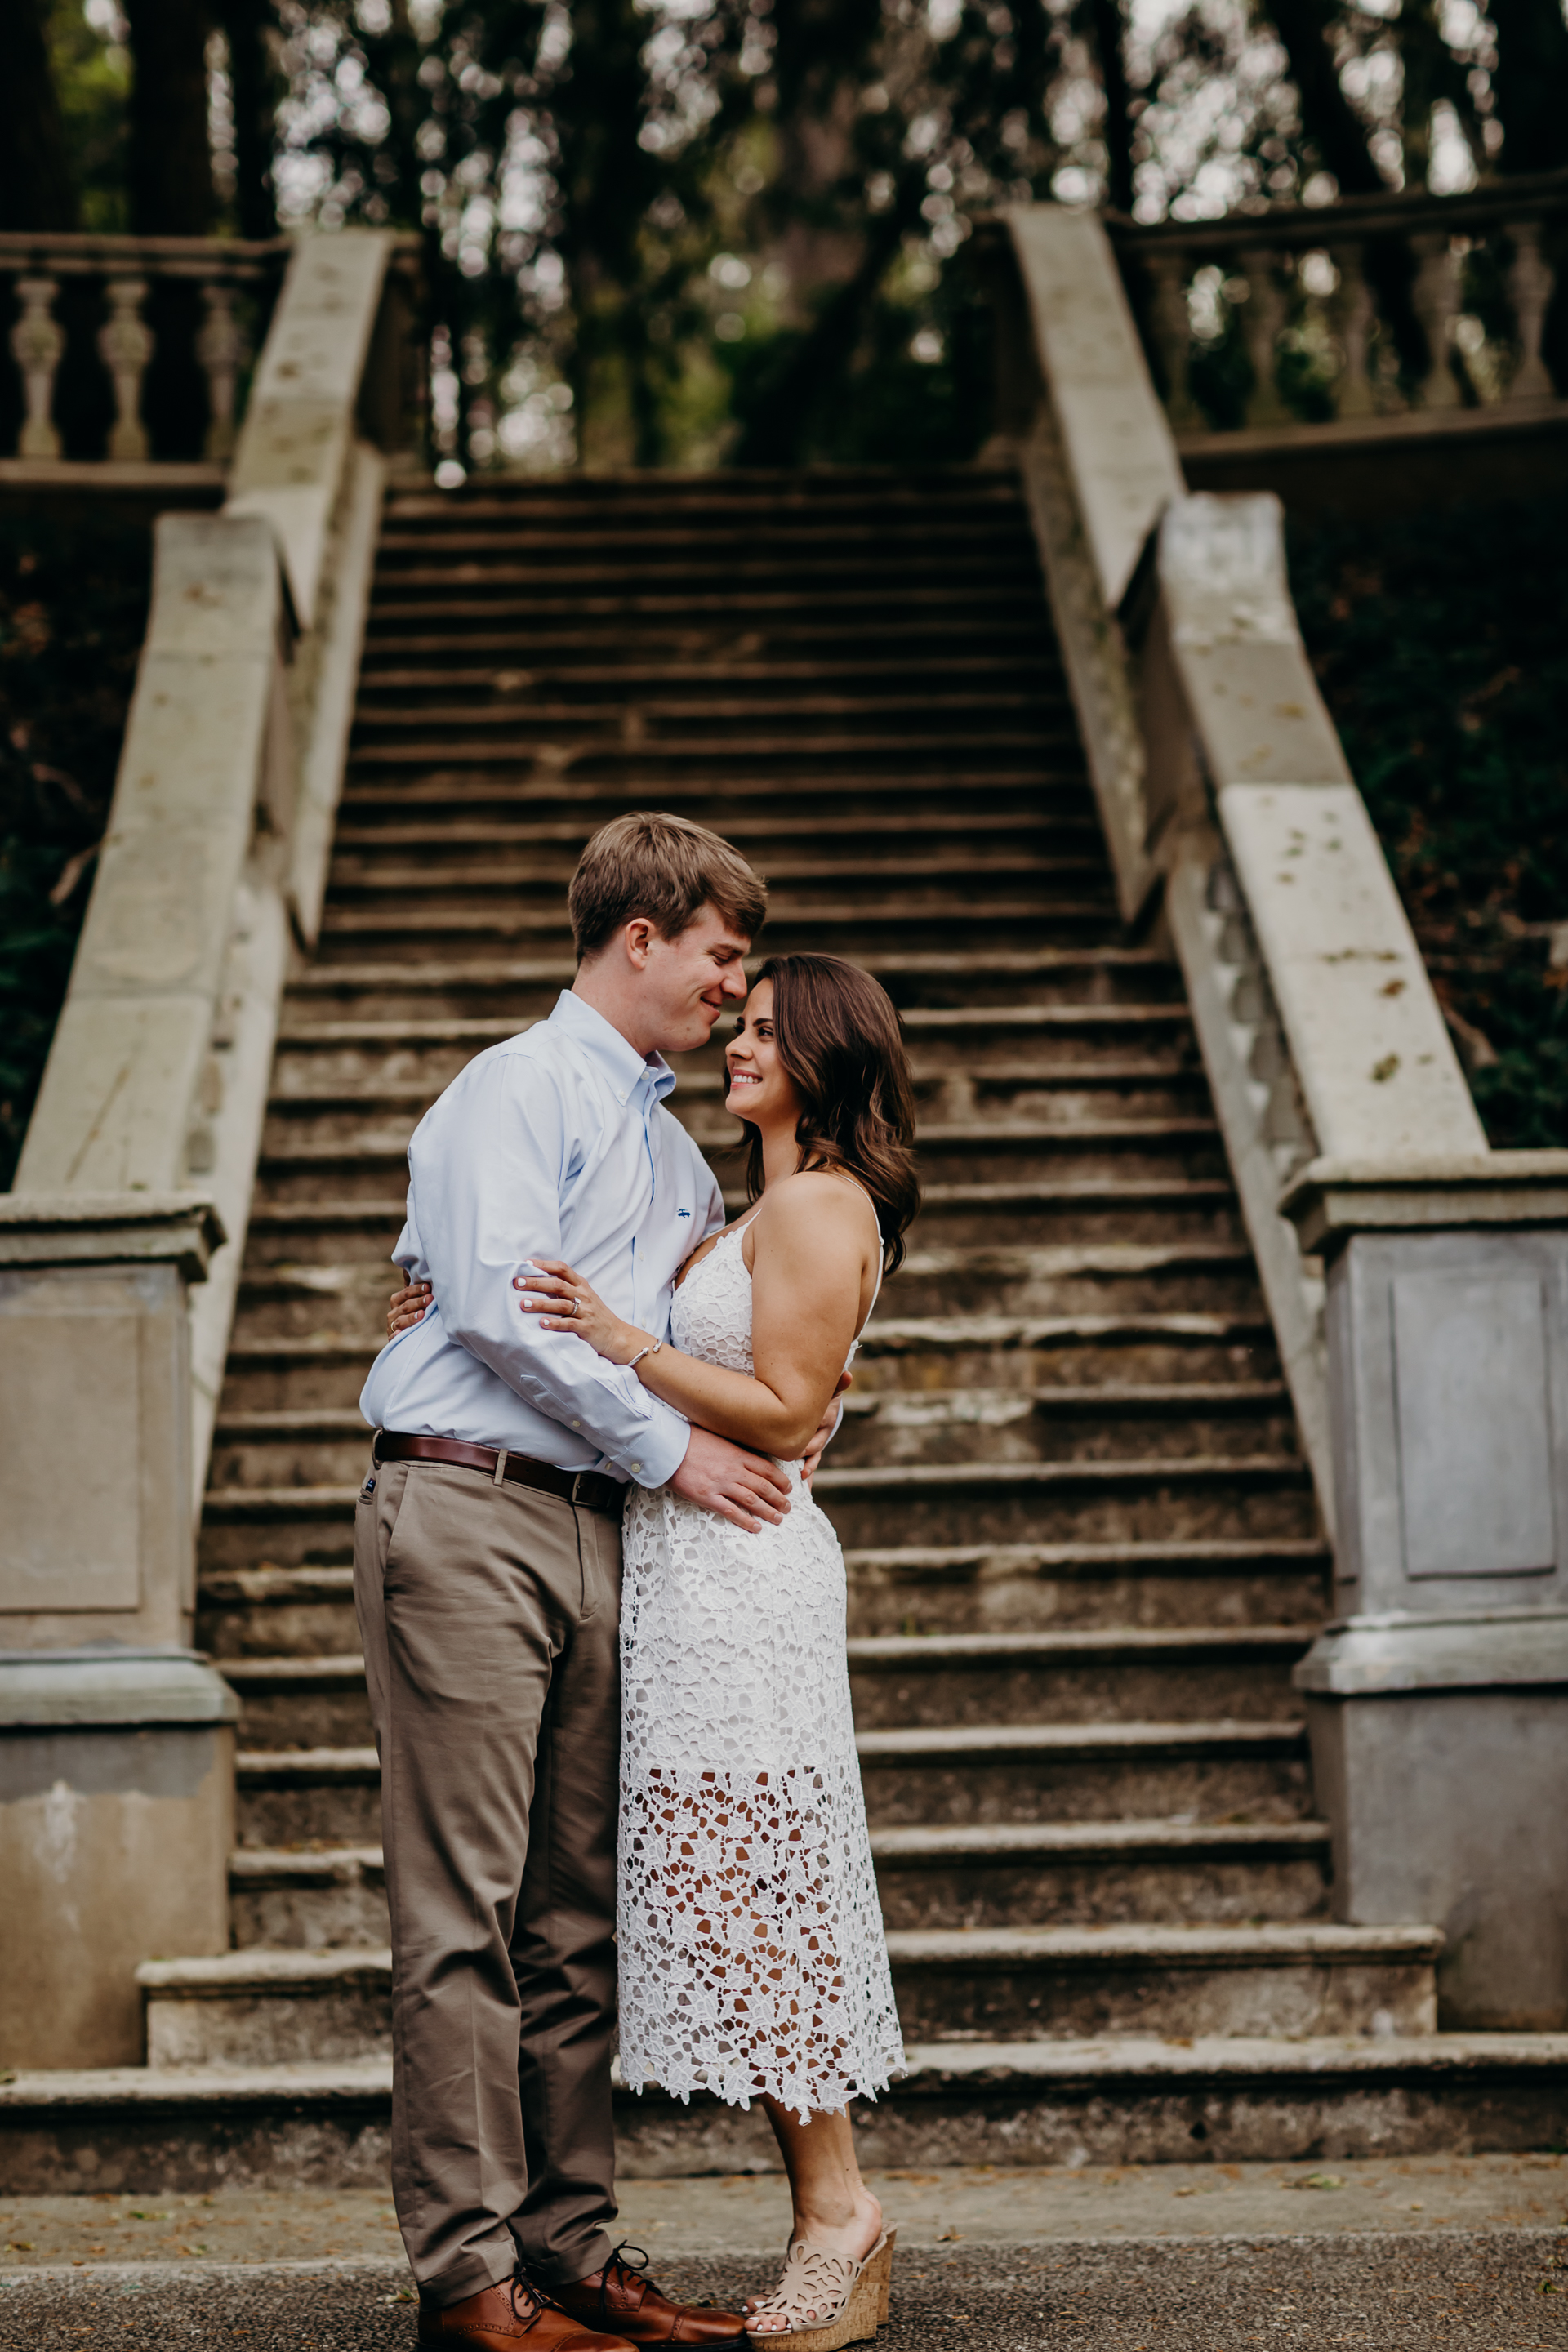 Gianna Keiko Atlanta NYC California Wedding Elopement Photographer_ Engagement-17.jpg